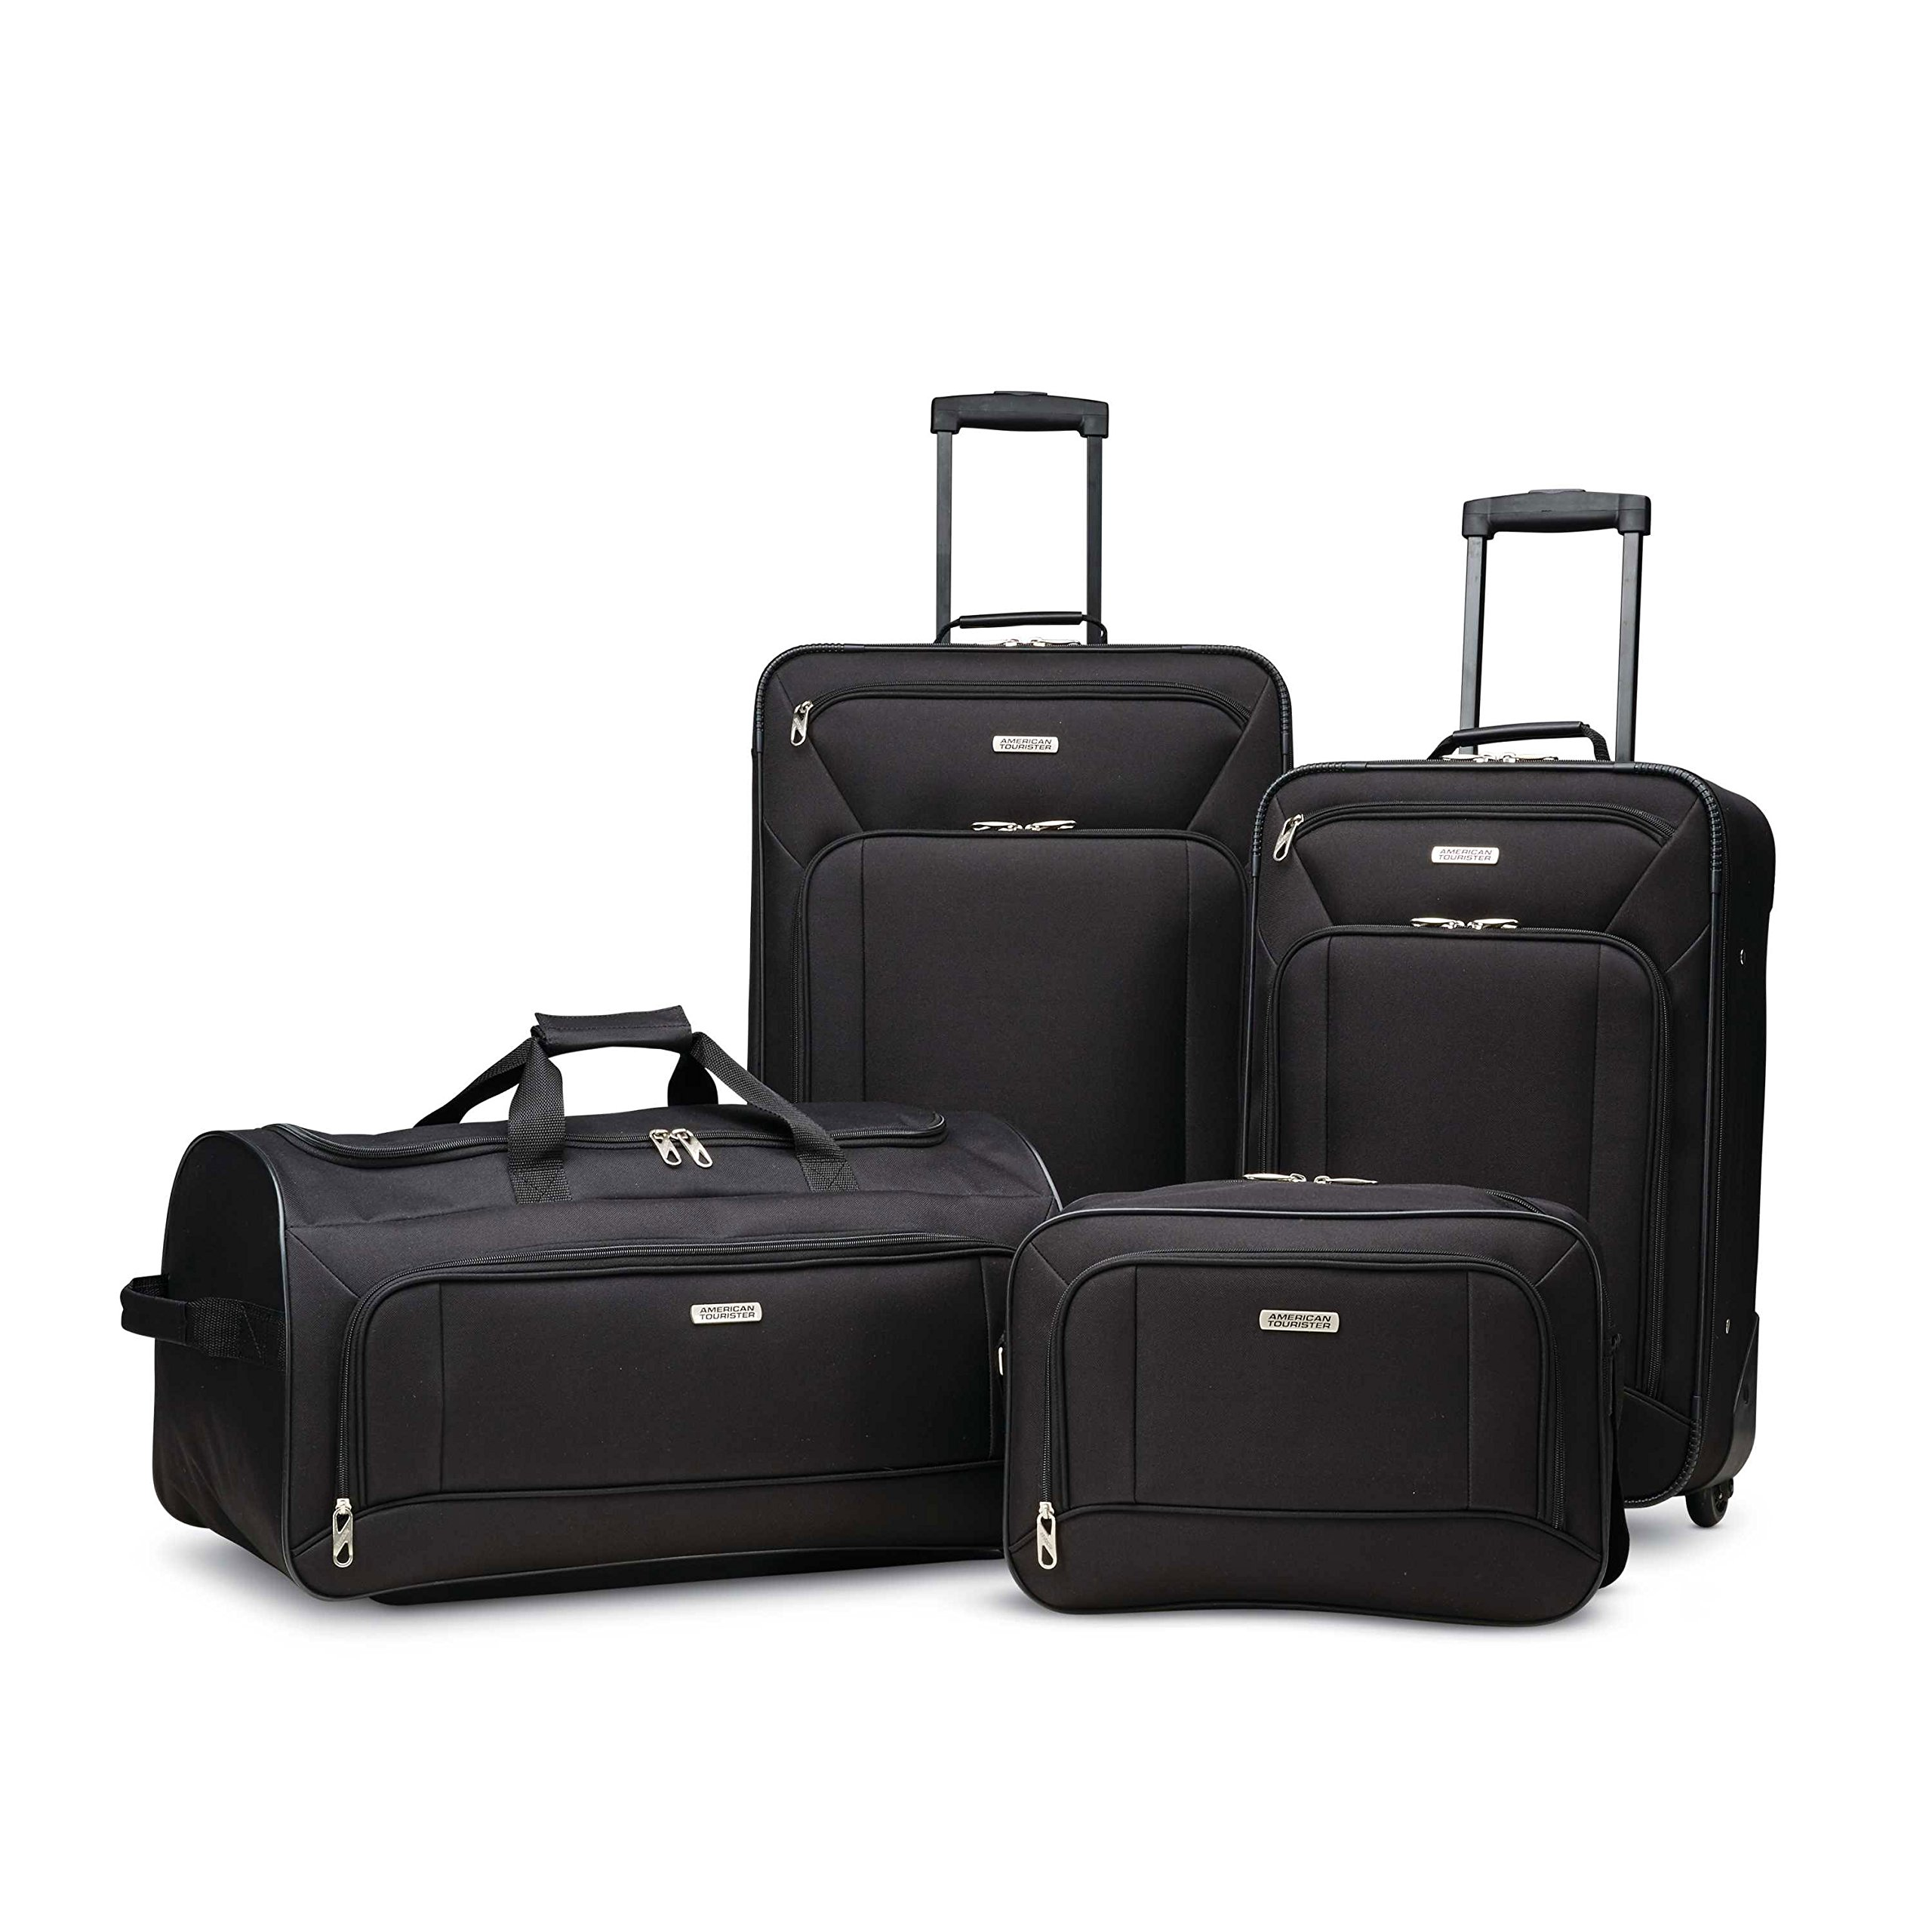 American Tourister Fieldbrook Xlt 4pc Set (Bb/Wh Dfl/ 21/25 Upright), Black by American Tourister (Image #1)